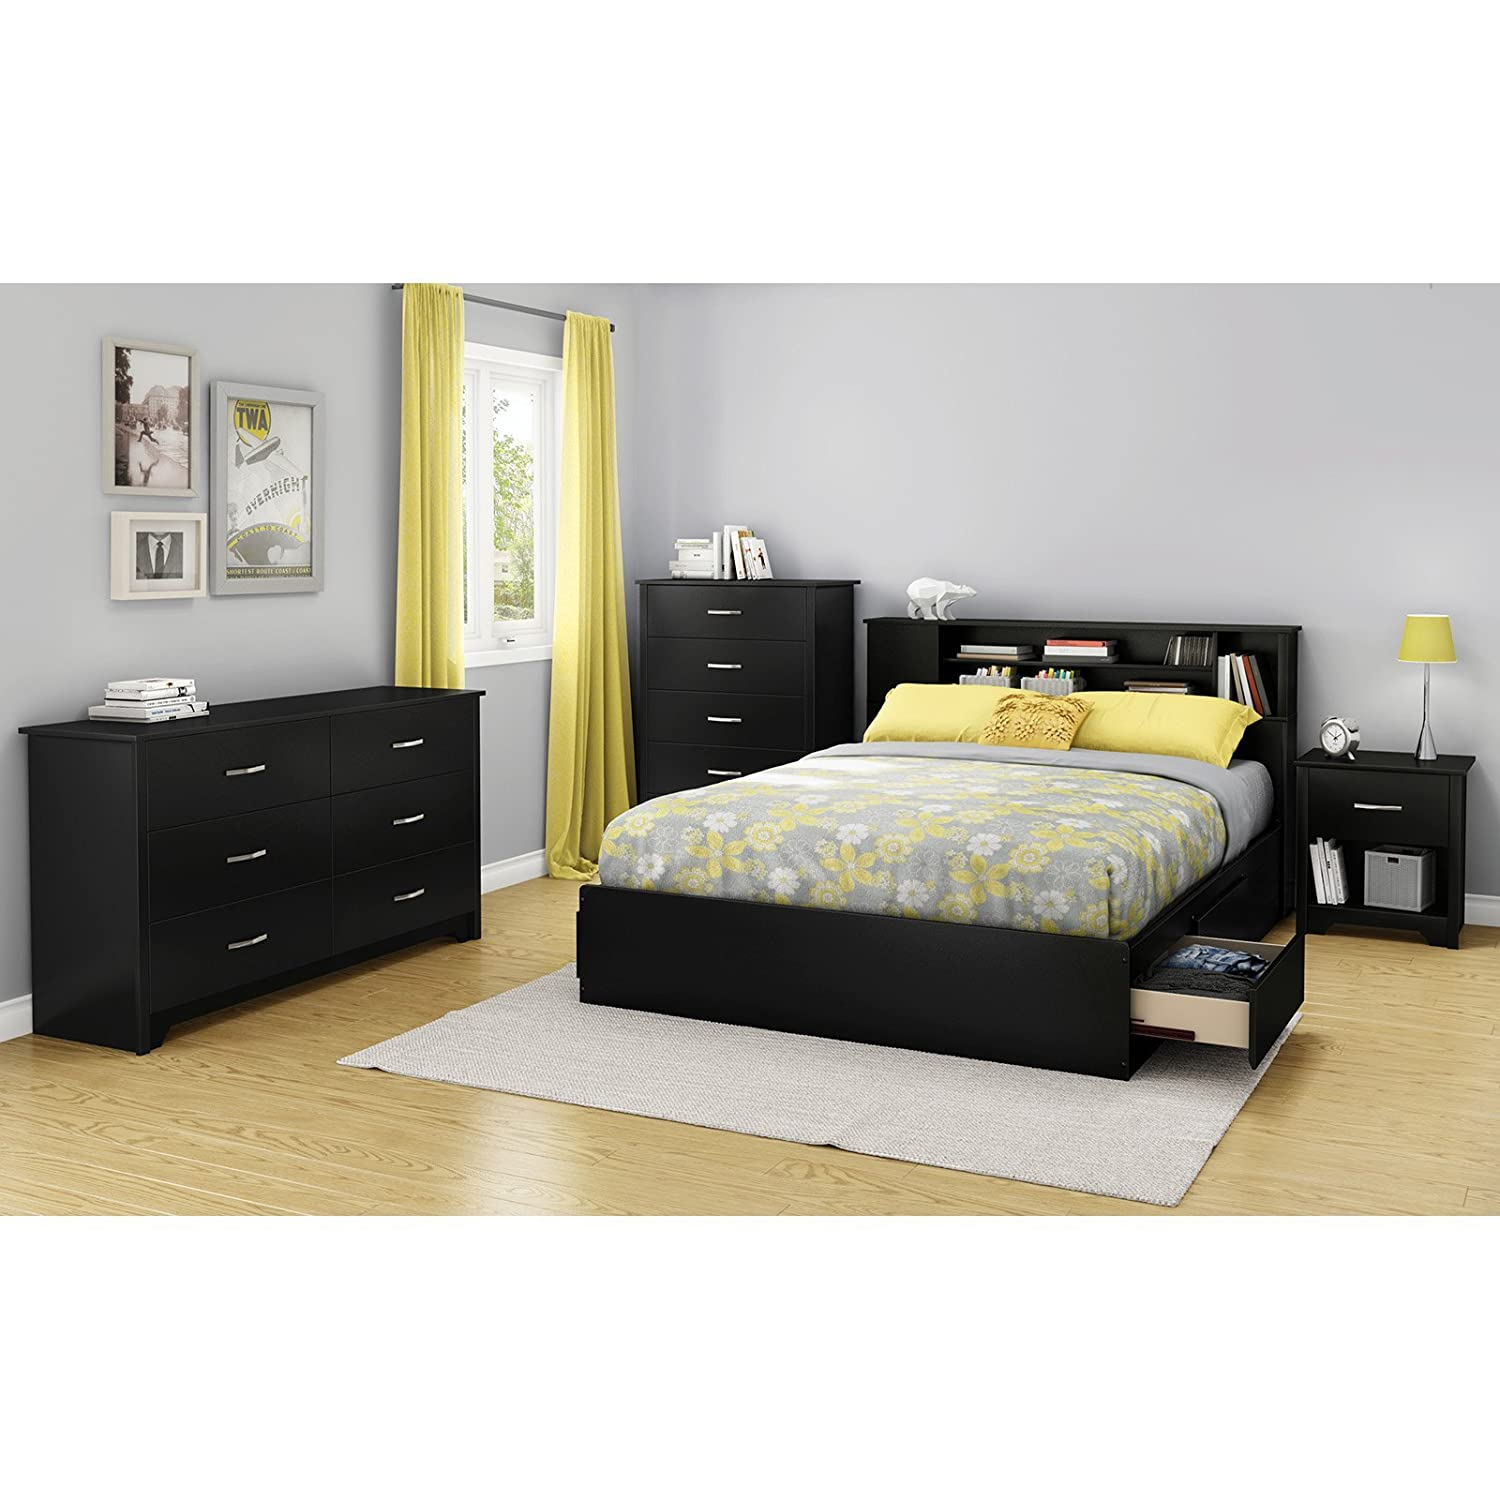 Amazon South Shore Furniture 60 Fusion Mates Bed Queen